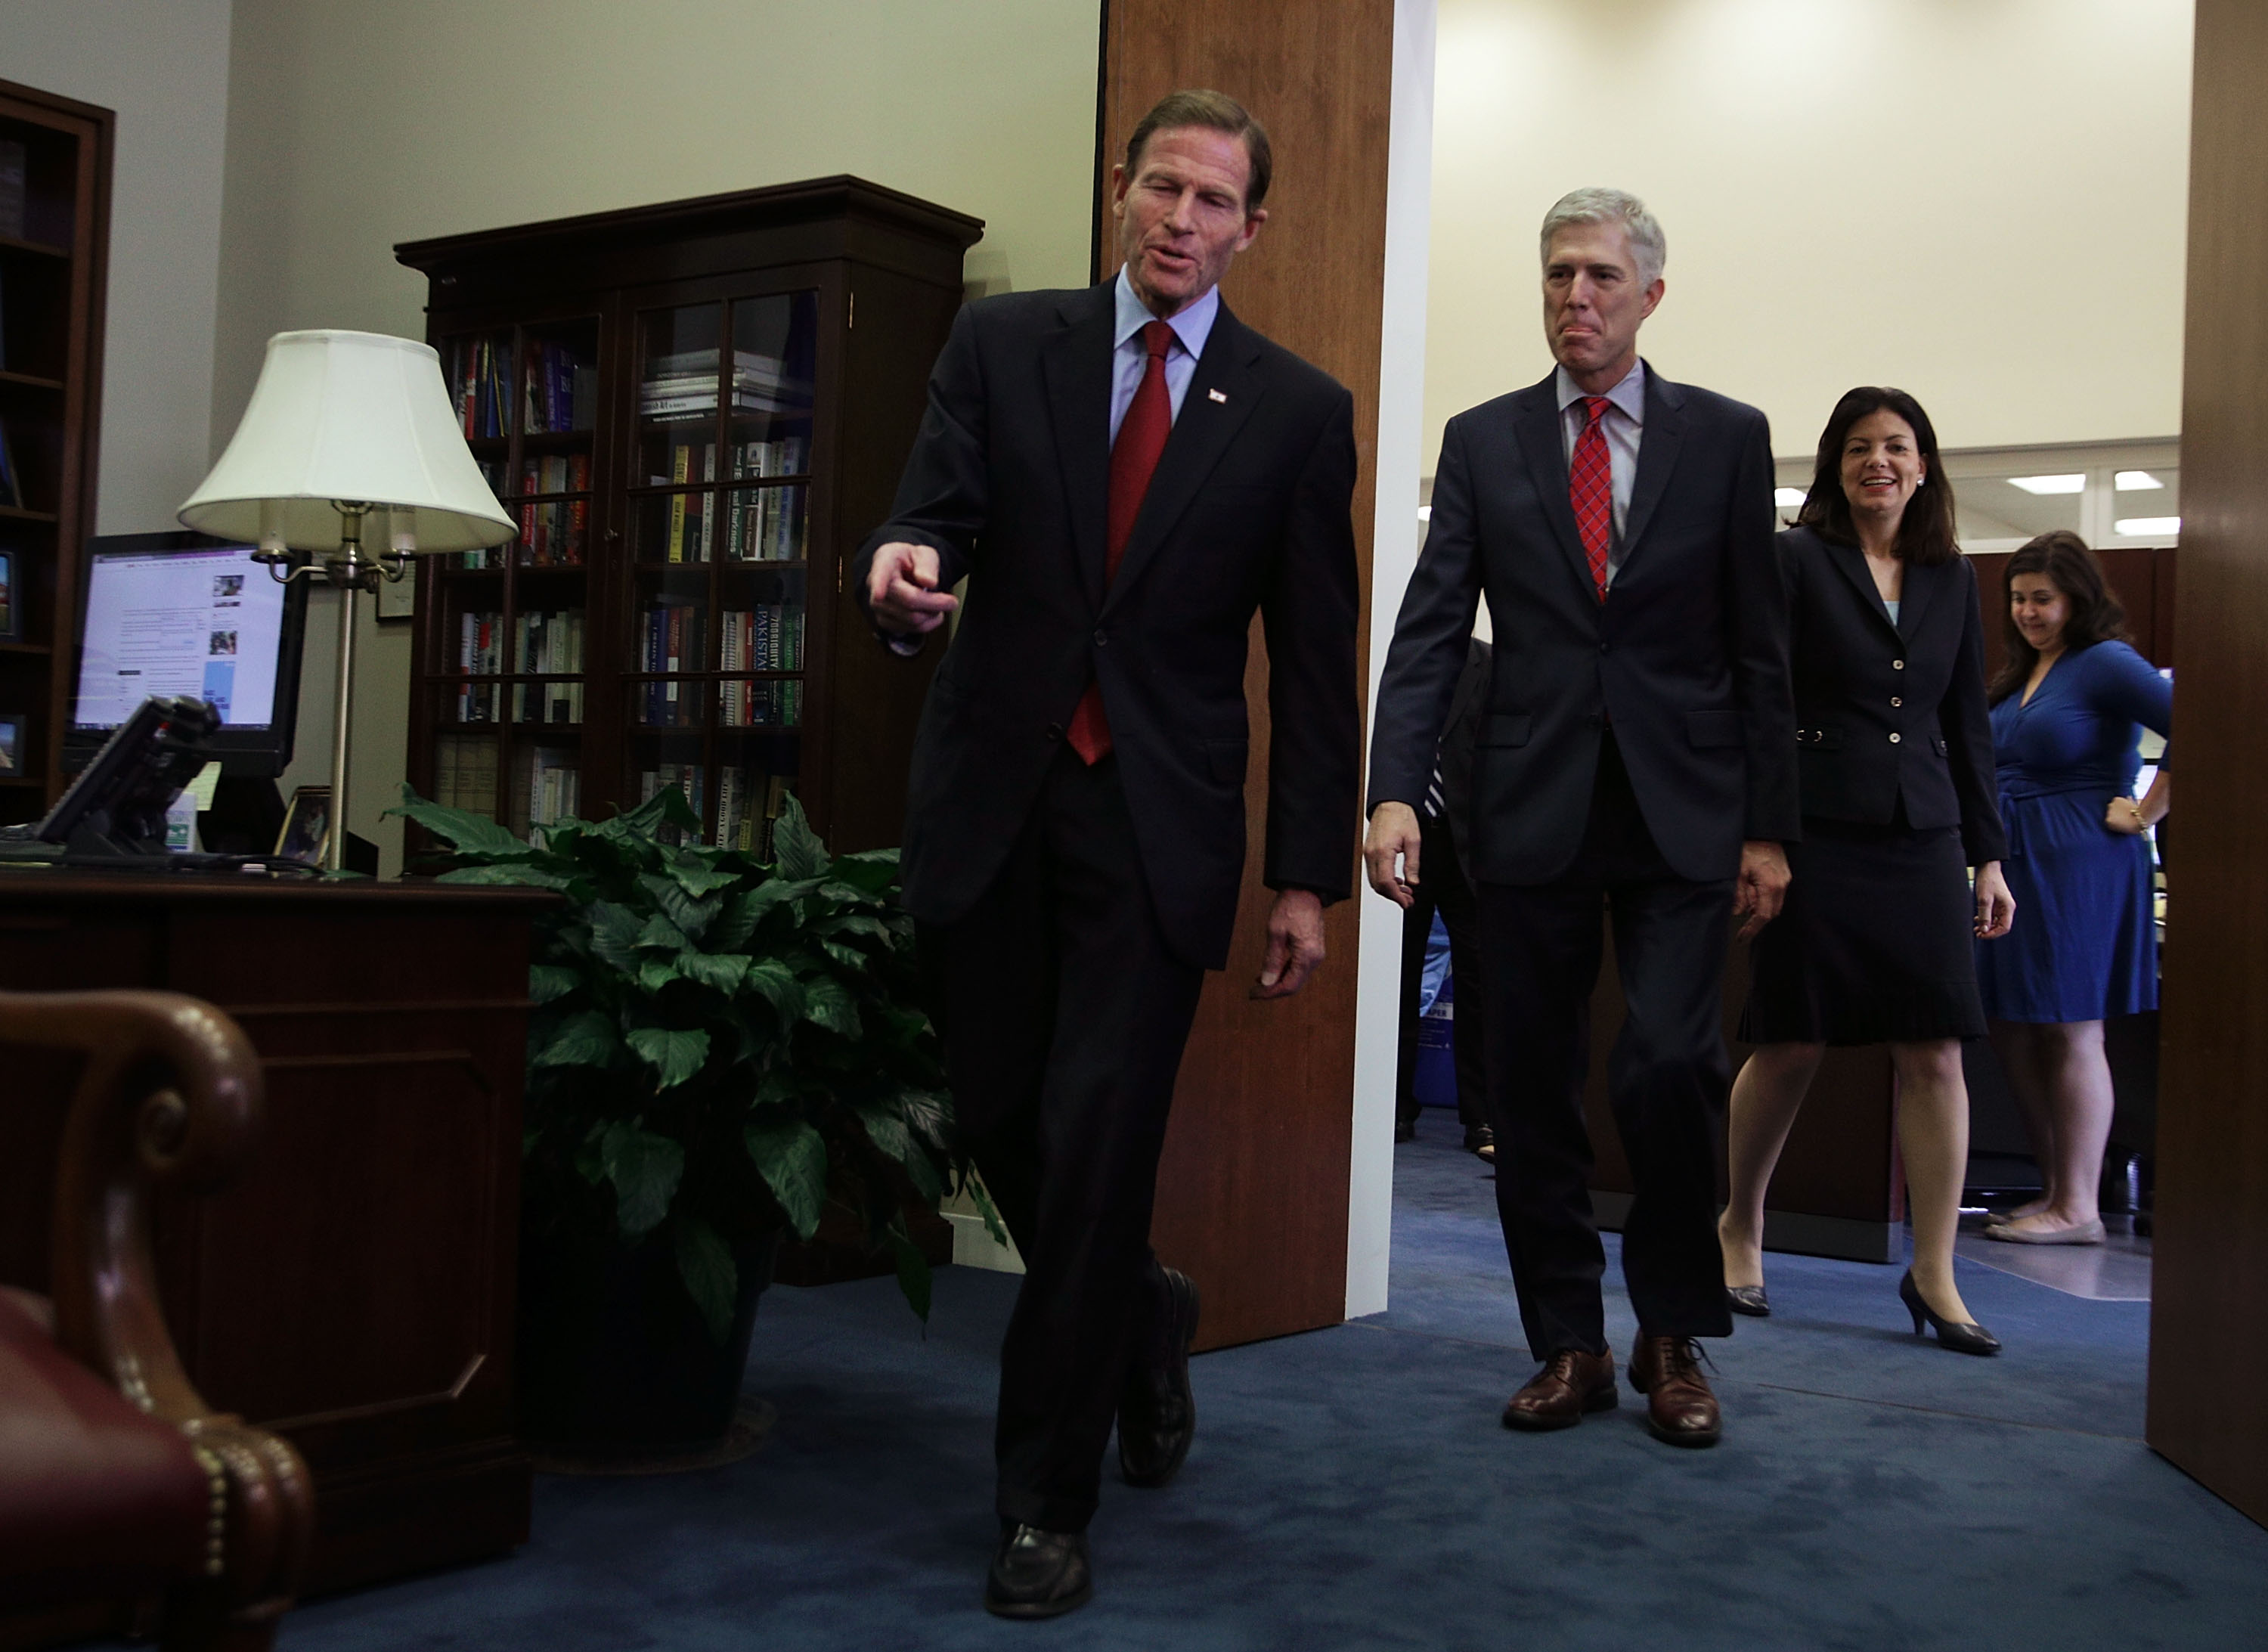 U.S. Supreme Court nominee Judge Neil Gorsuch (2nd L) arrives with former Sen. Kelly Ayotte (R-NH) (R) at the office of Sen. Richard Blumenthal (D-CT) (L) for a meeting February 8, 2017 in Washington, DC. (credit: Alex Wong/Getty Images)